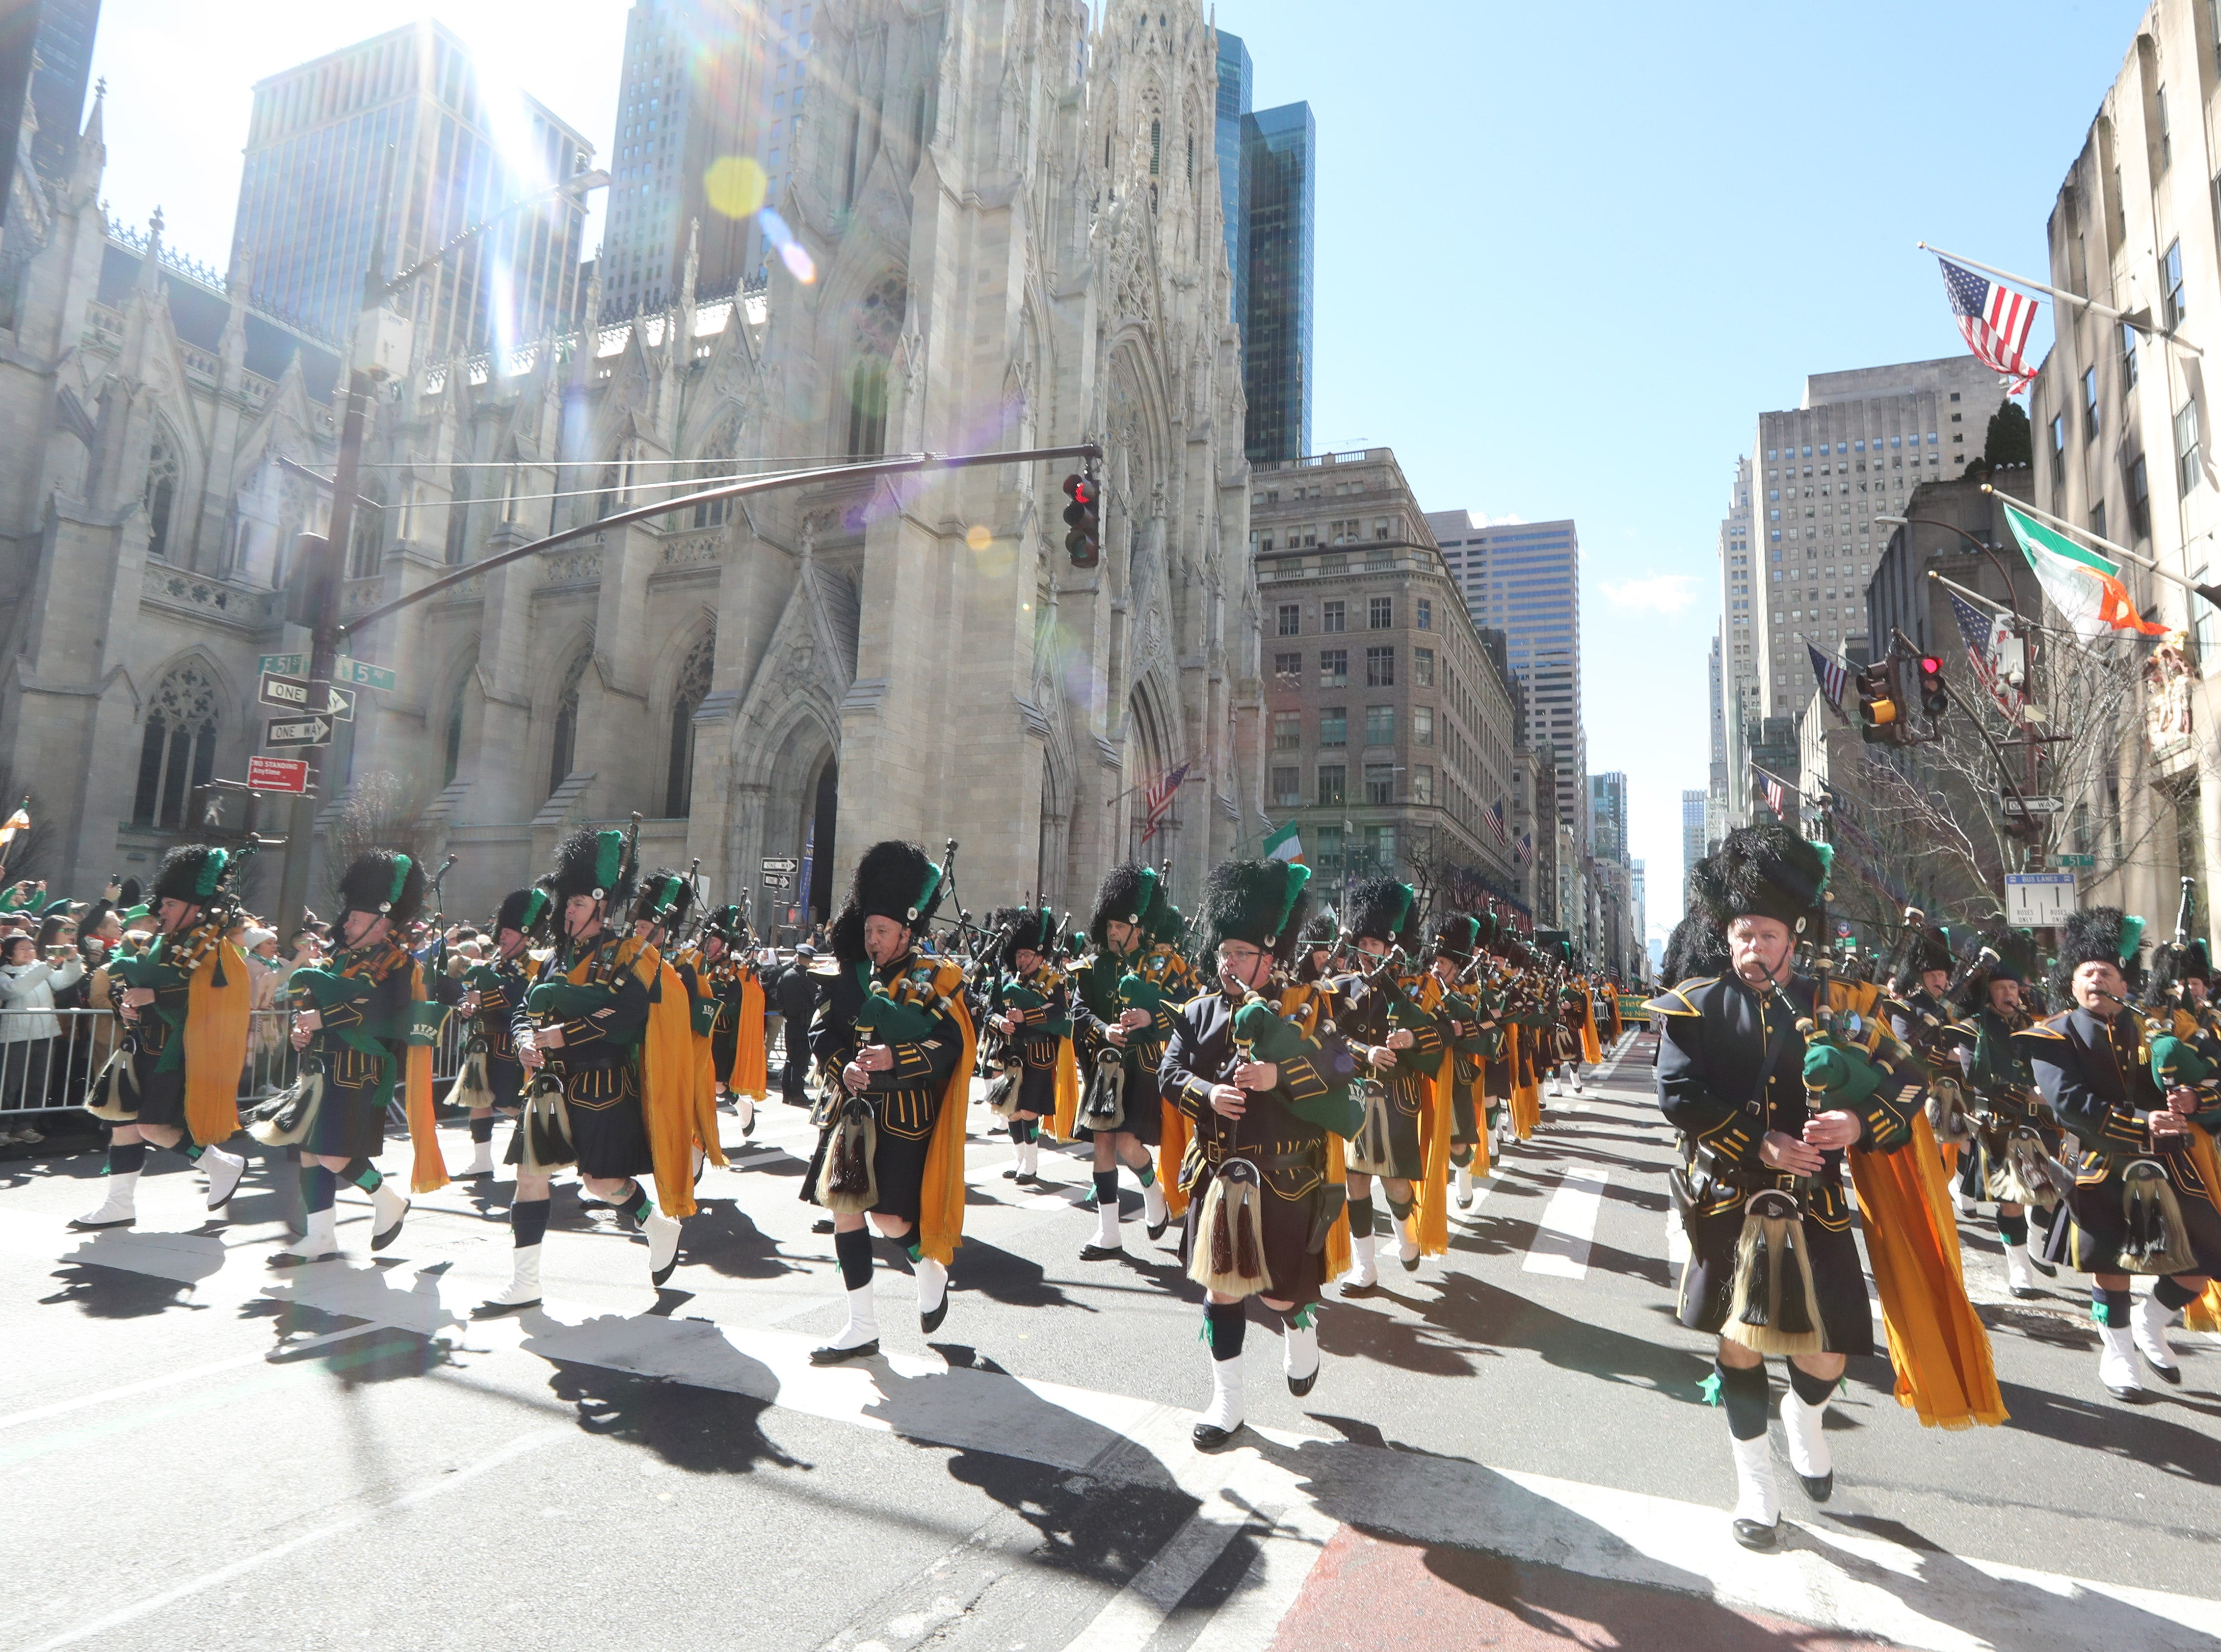 The City of New York Police Department Emerald Society Pipes and Drums march in the 258th annual St. Patrick's Day Parade in New York City on March 16, 2019. Hundreds of thousands of people lined Fifth Ave. as the parade made its way from 44th St. up to 79th St.